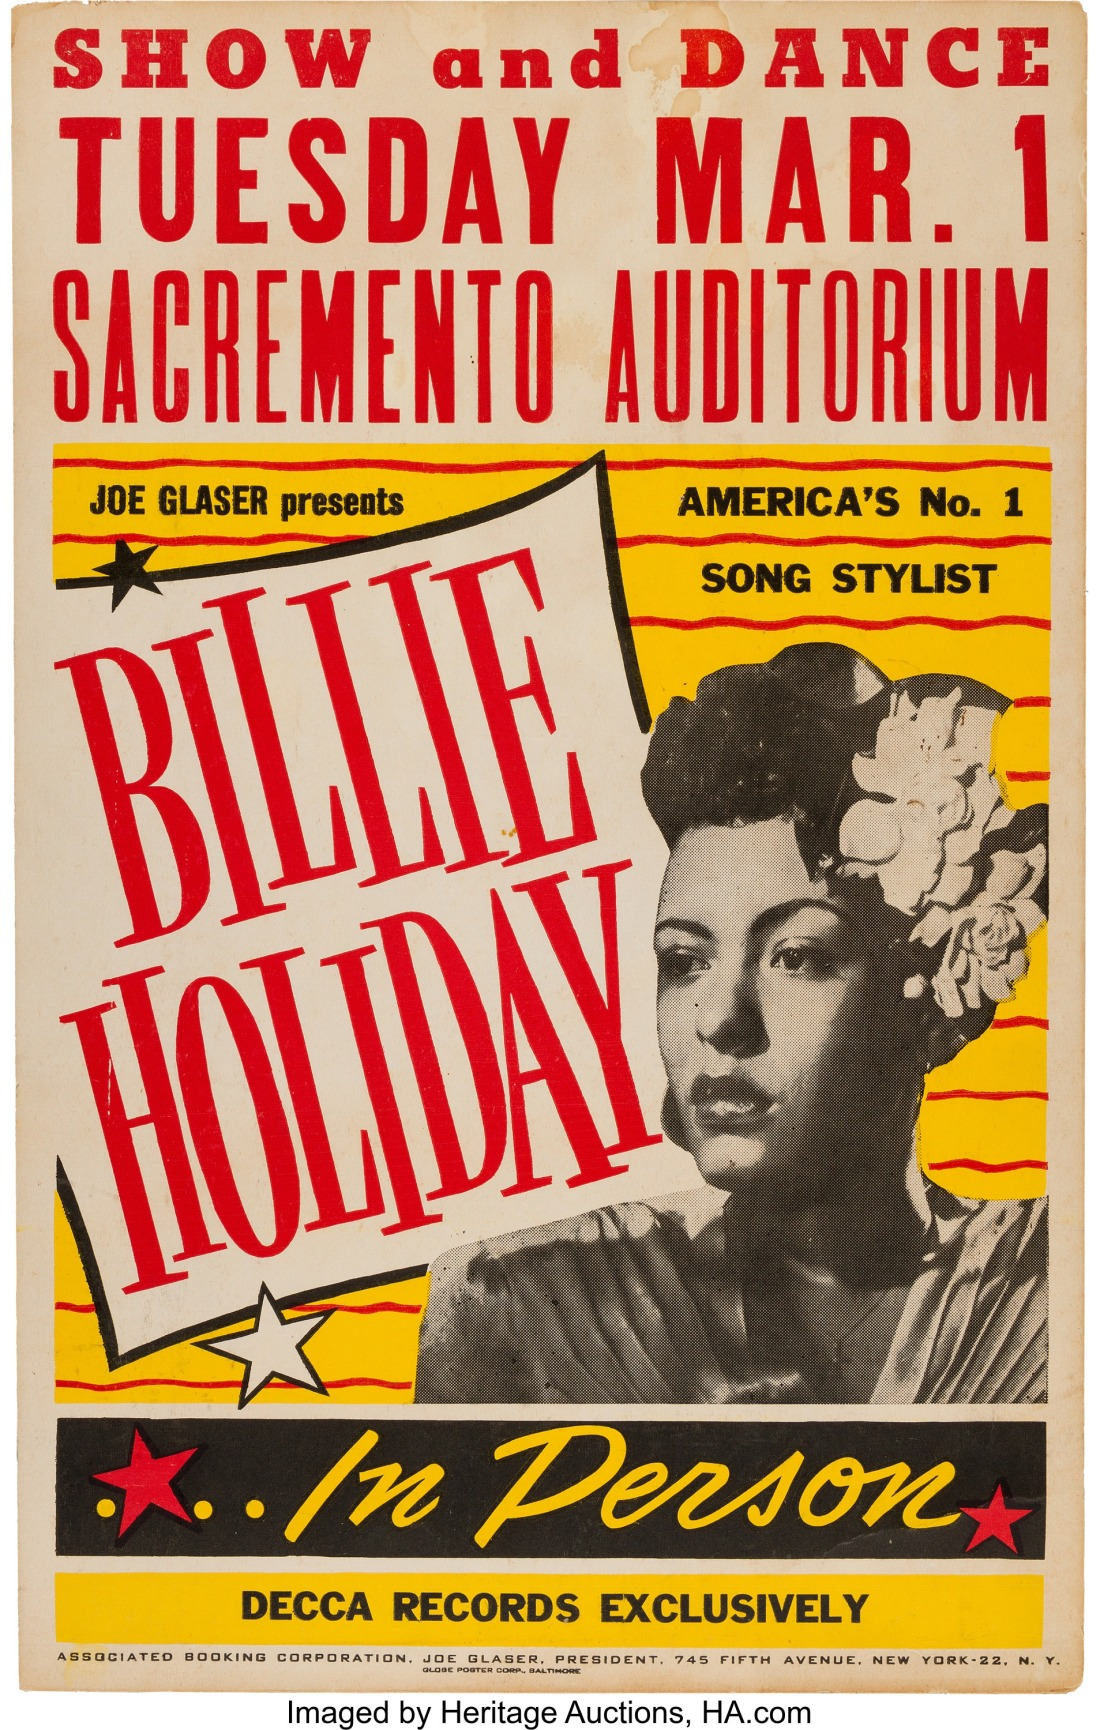 Billie Holiday Sacramento Auditorium Concert Poster (Joe Glaser Presents...